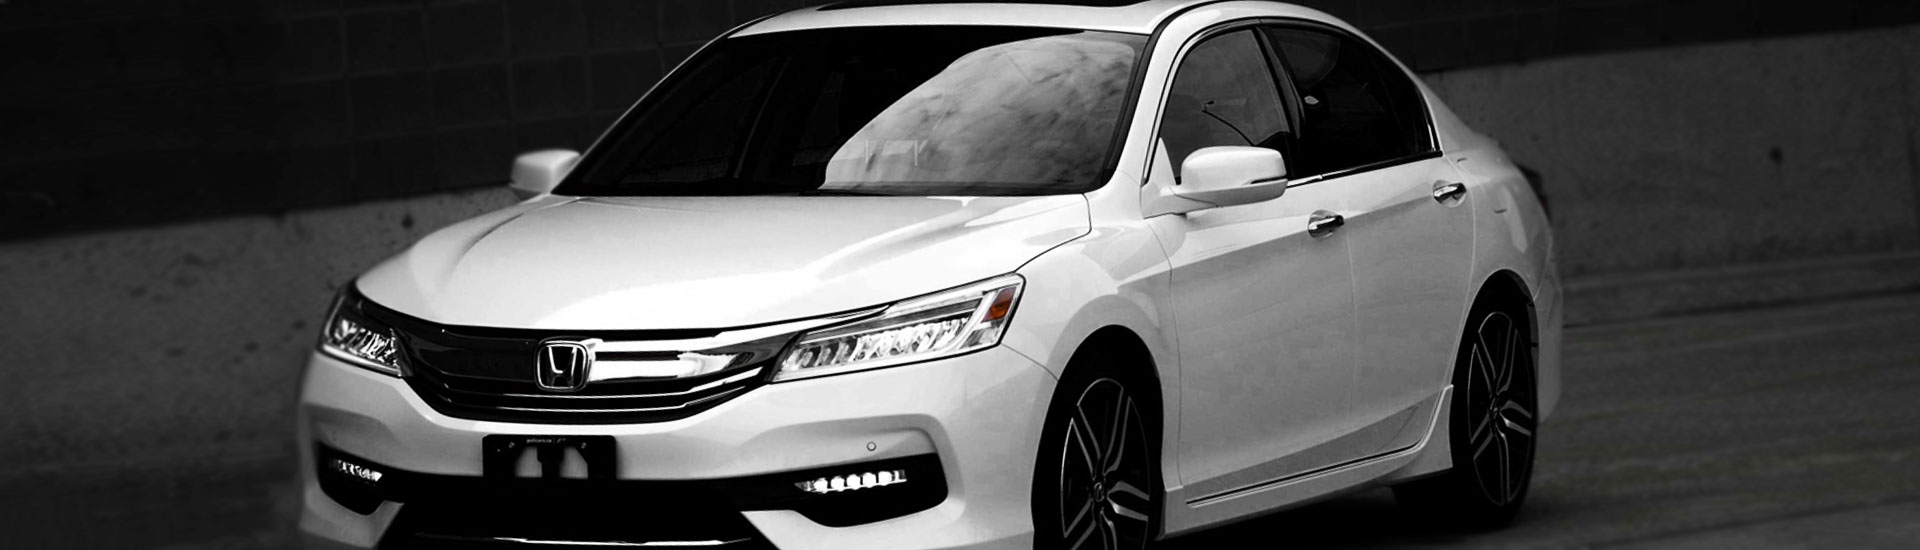 Honda Accord Window Tint Kit | DIY Precut Honda Accord ...